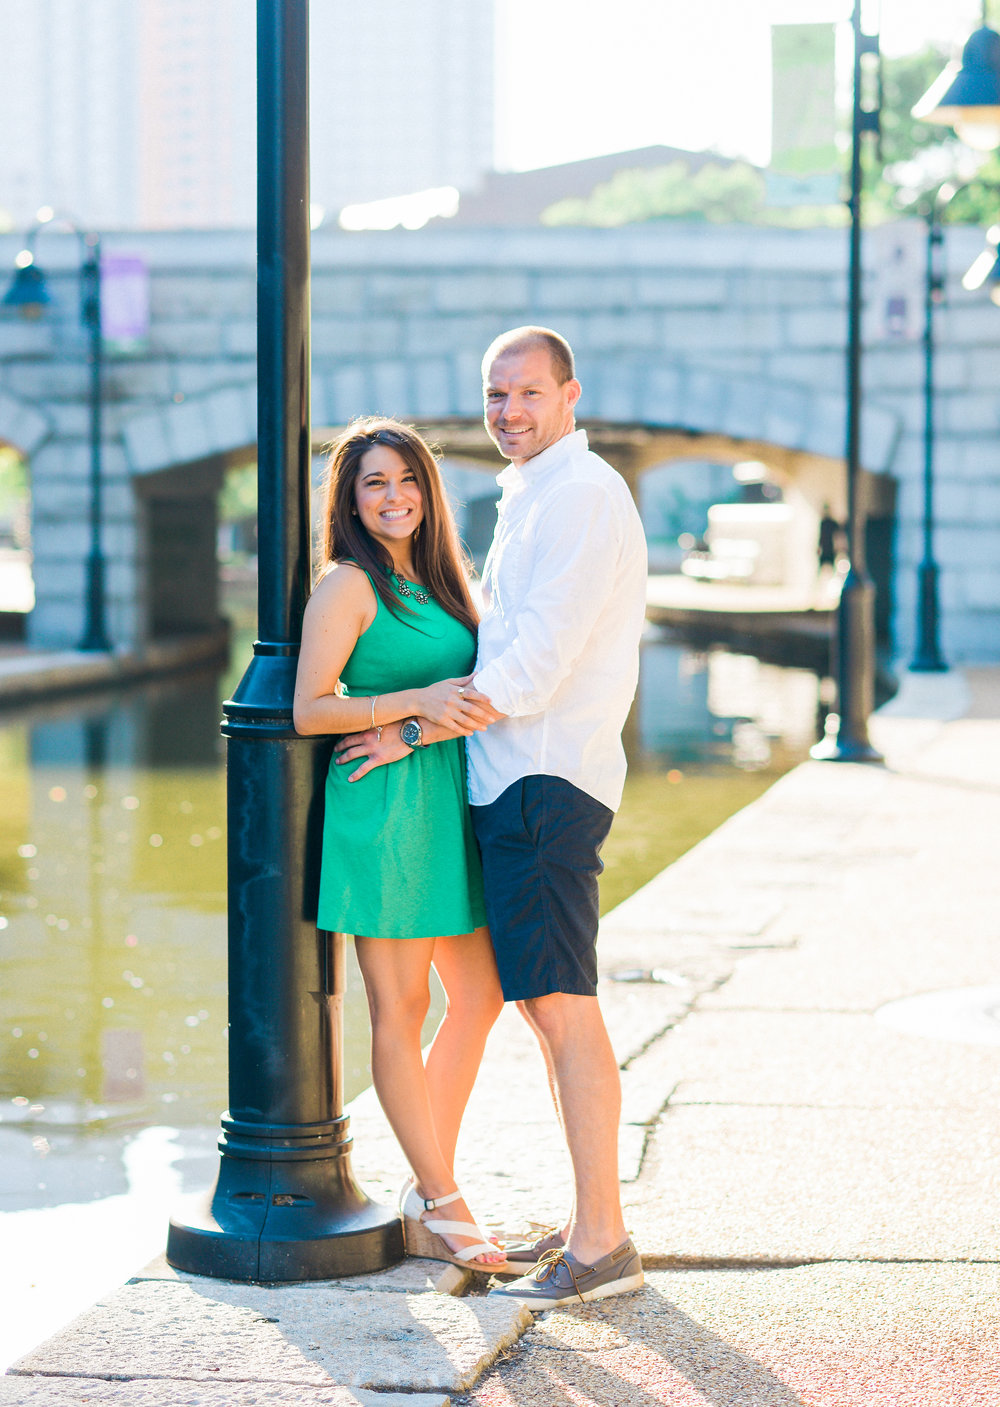 88lovestories-engagement-76.jpg